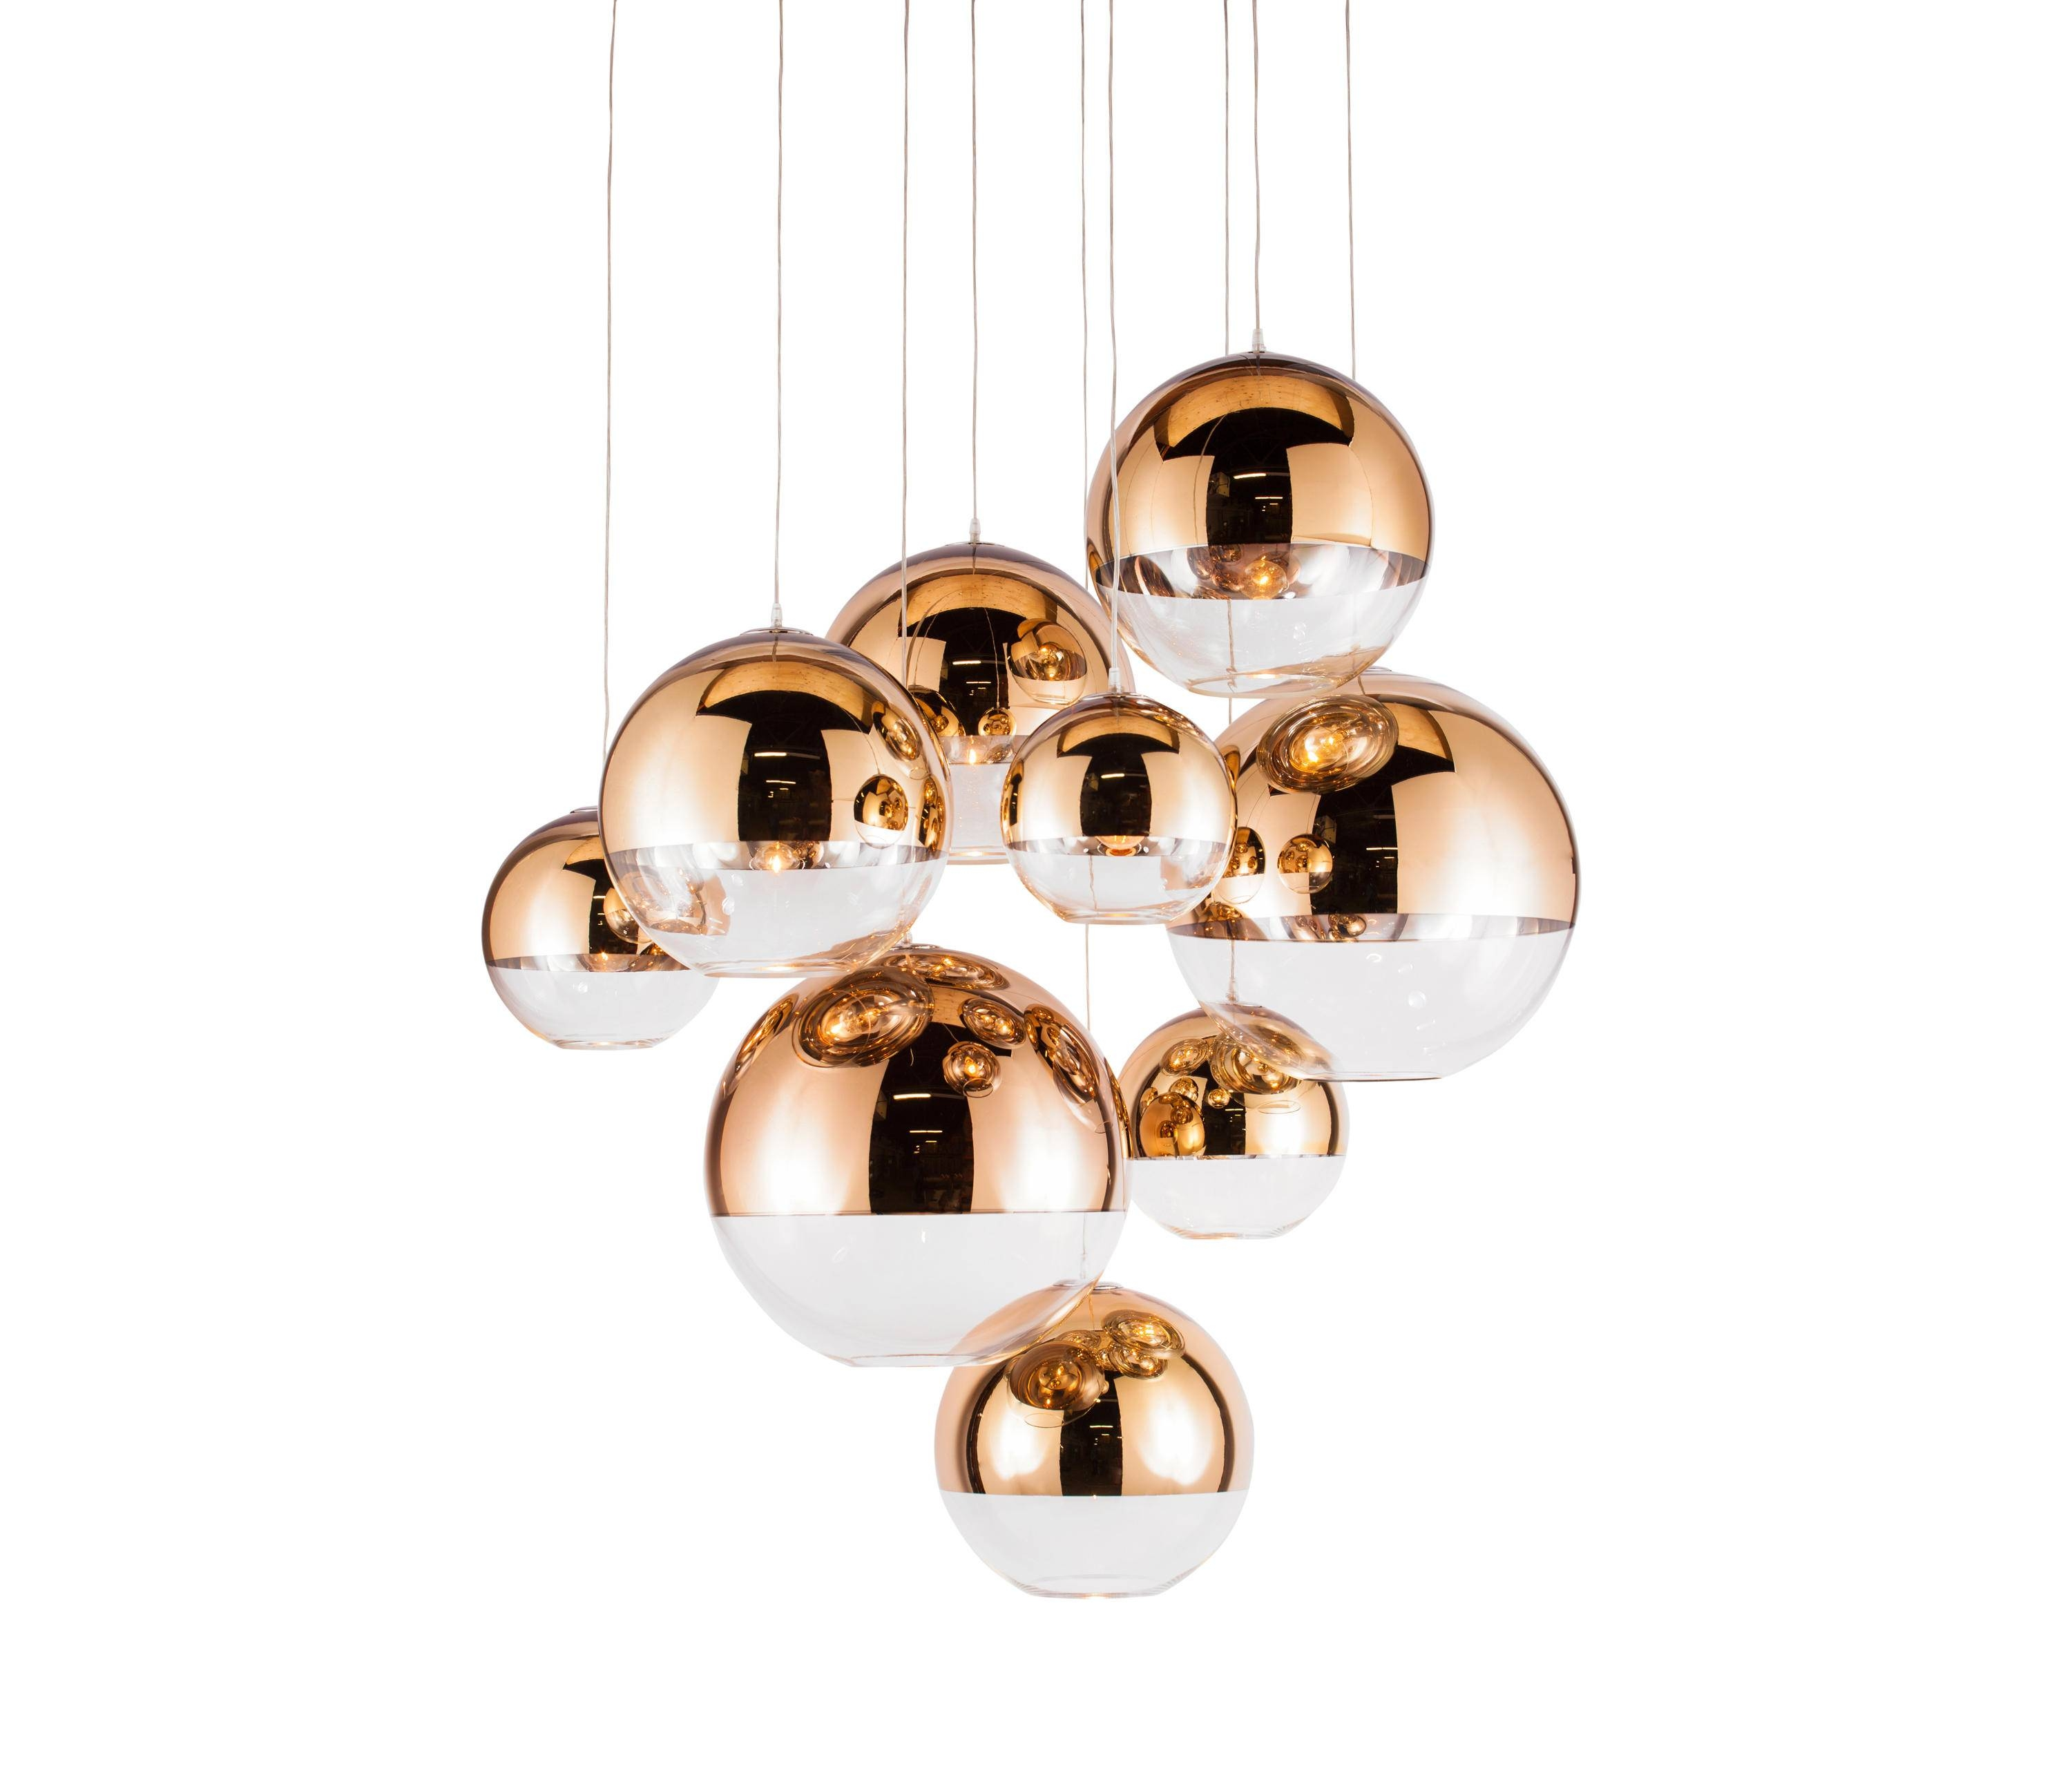 Bolio Suspension - General Lighting From Viso | Architonic inside Bolio Pendant Lights (Image 10 of 15)